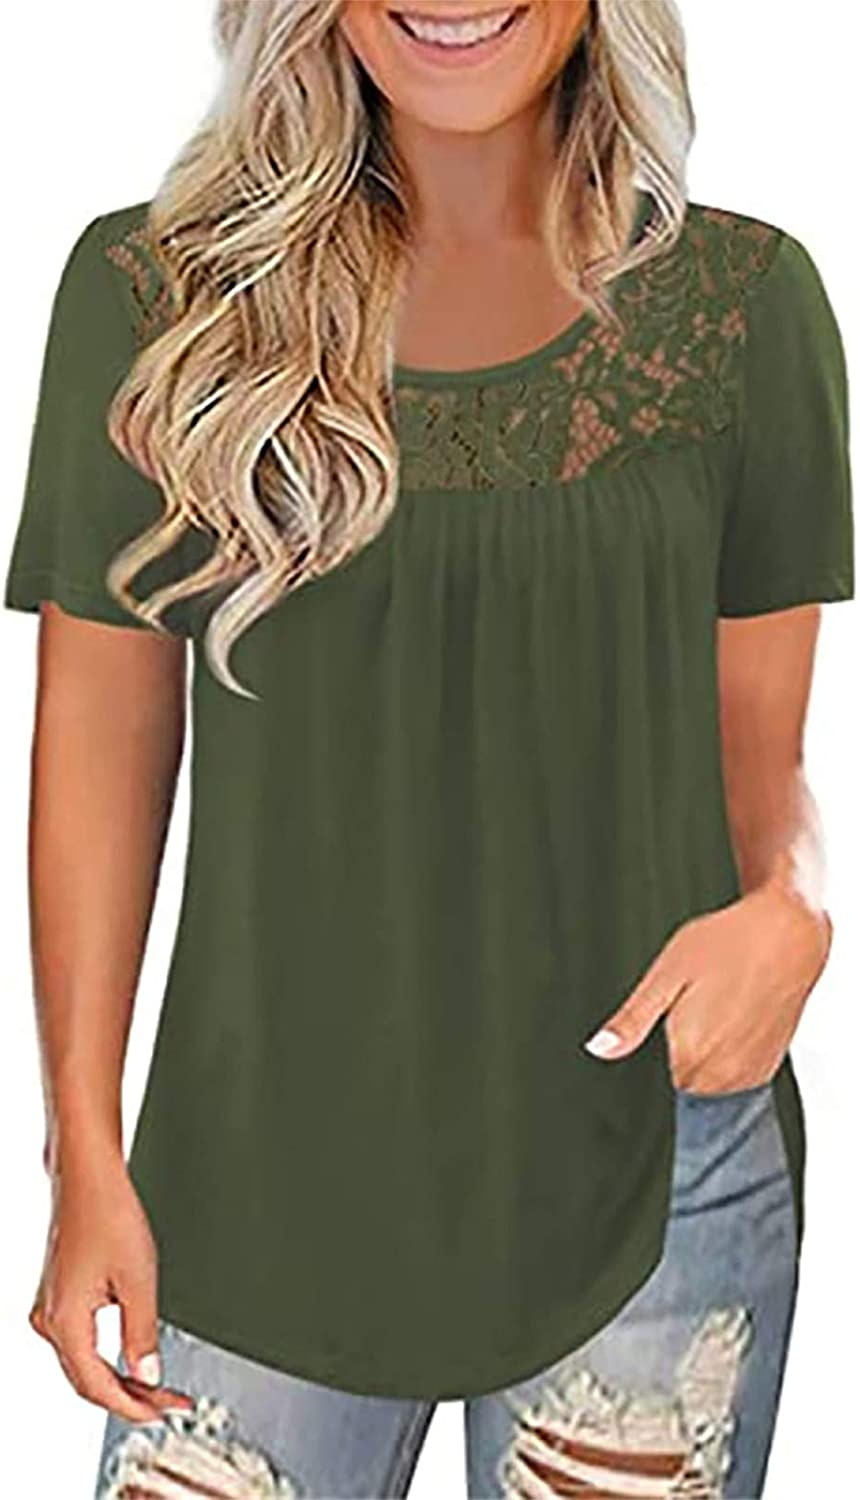 AODONG Short Sleeve Tops for Women, Women's Plus Size Summer Tops Lace Pleated Shirts Casual Loose Blouses Tunic Tops